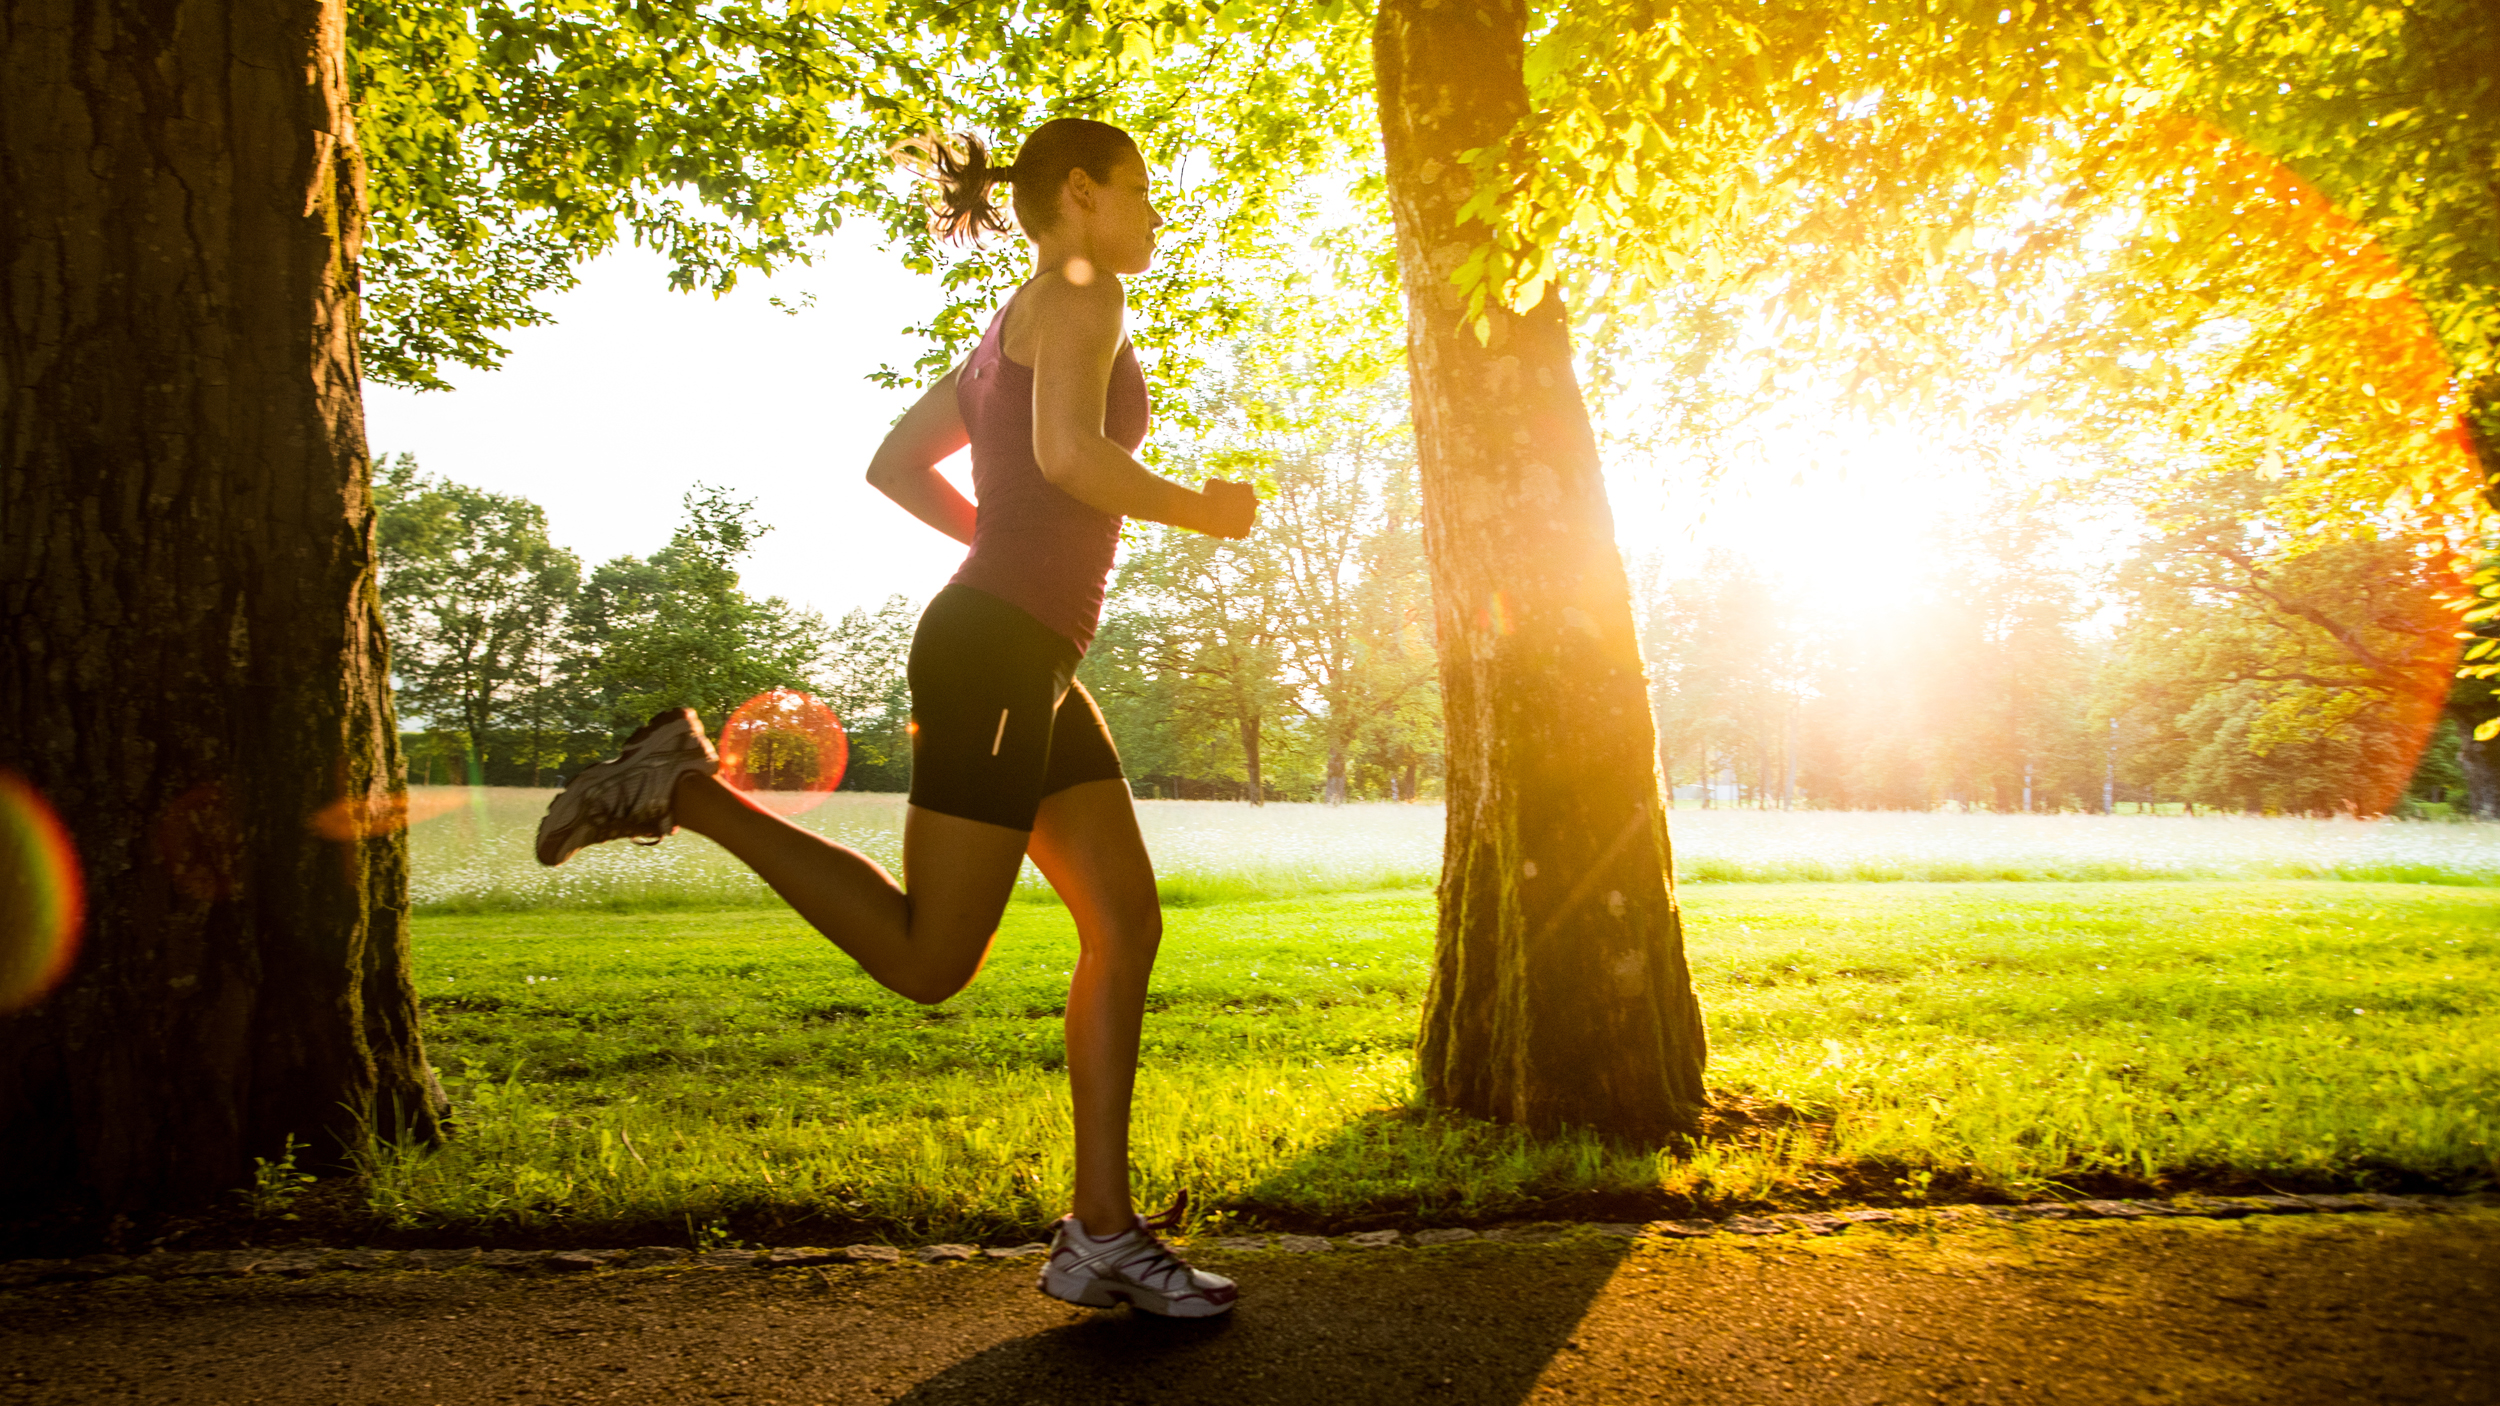 What you need to know before running outdoors